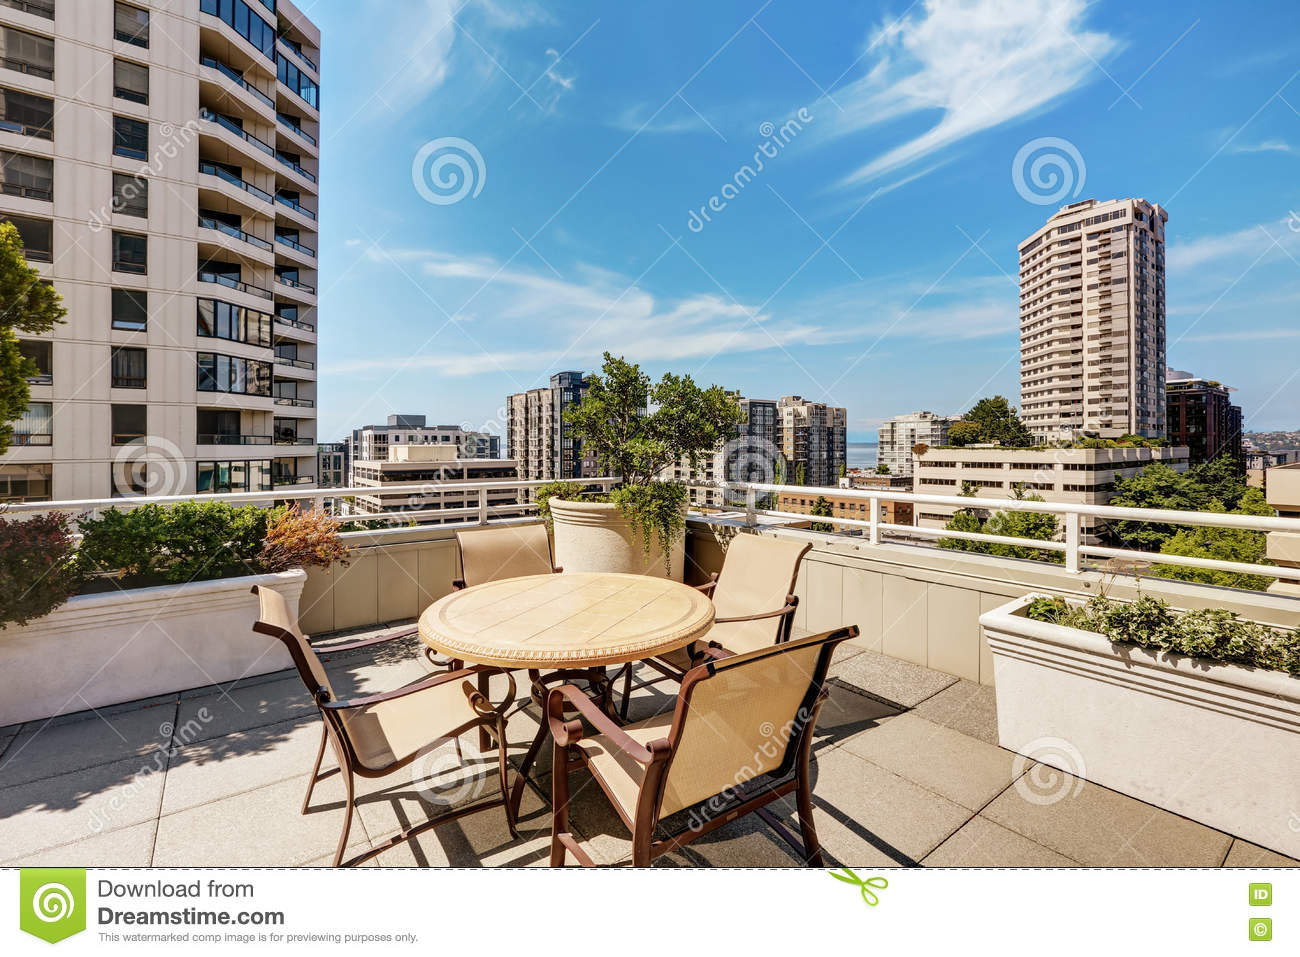 Apartment Building Roof apartment building roof top terrace exterior with patio table set